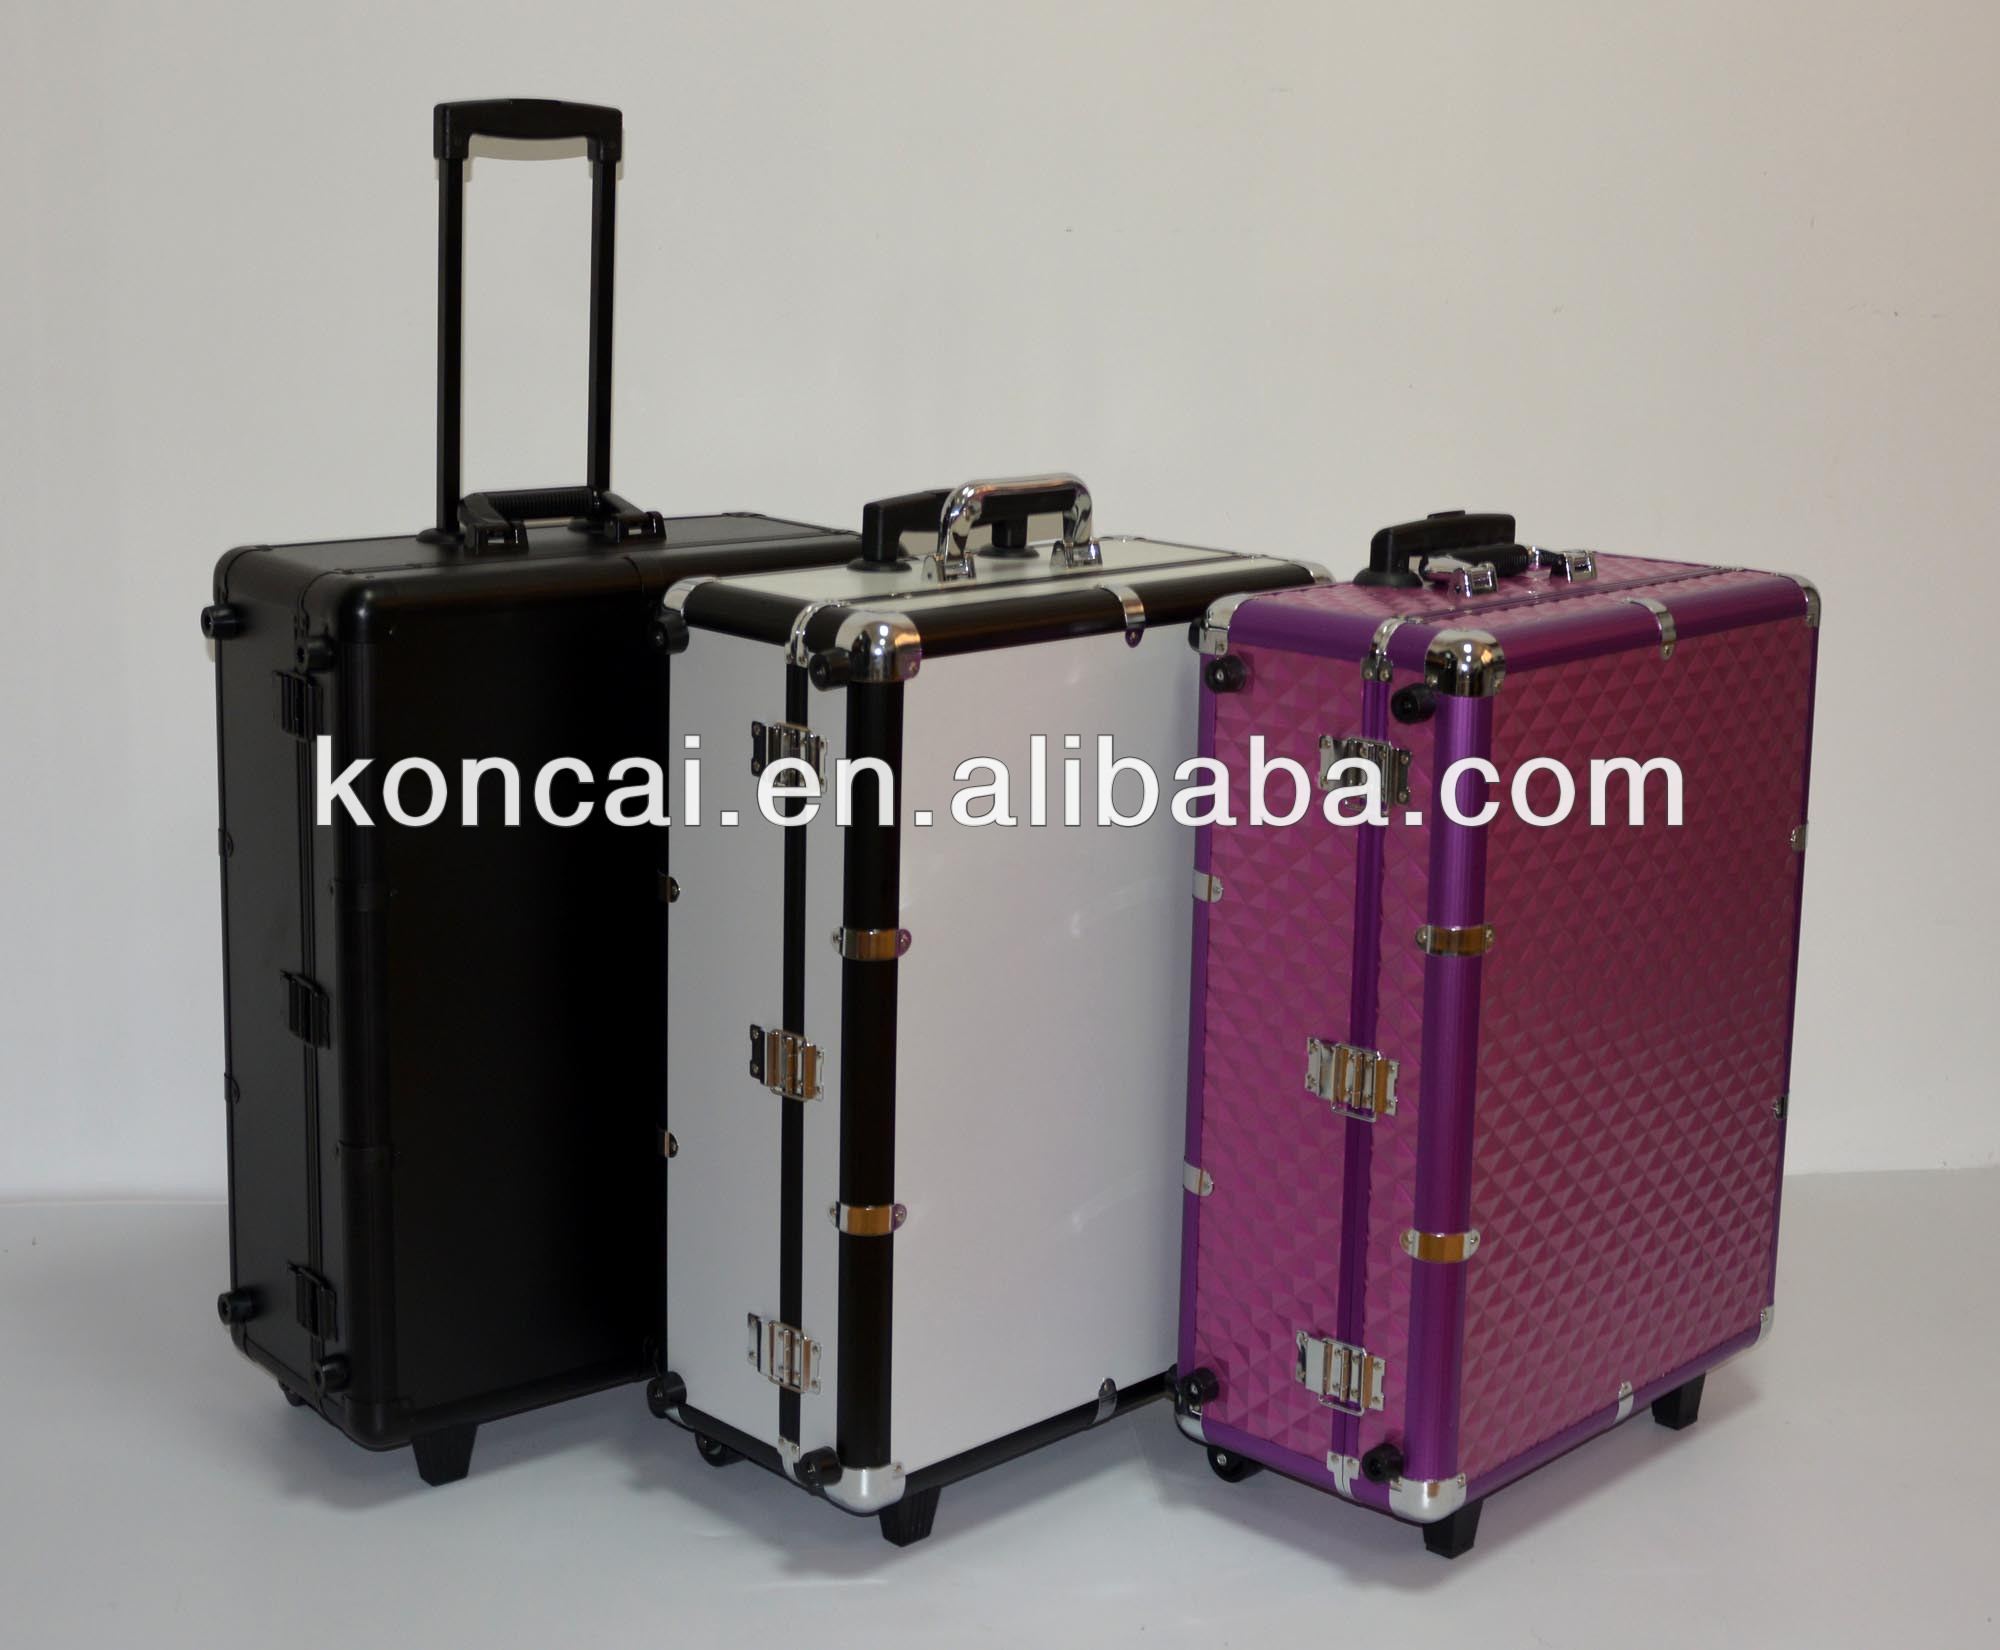 MOQ:1pc, Mobile Professional PINK Aluminum makeup case with lights / trolley aluminum lighted makeup train case with stands